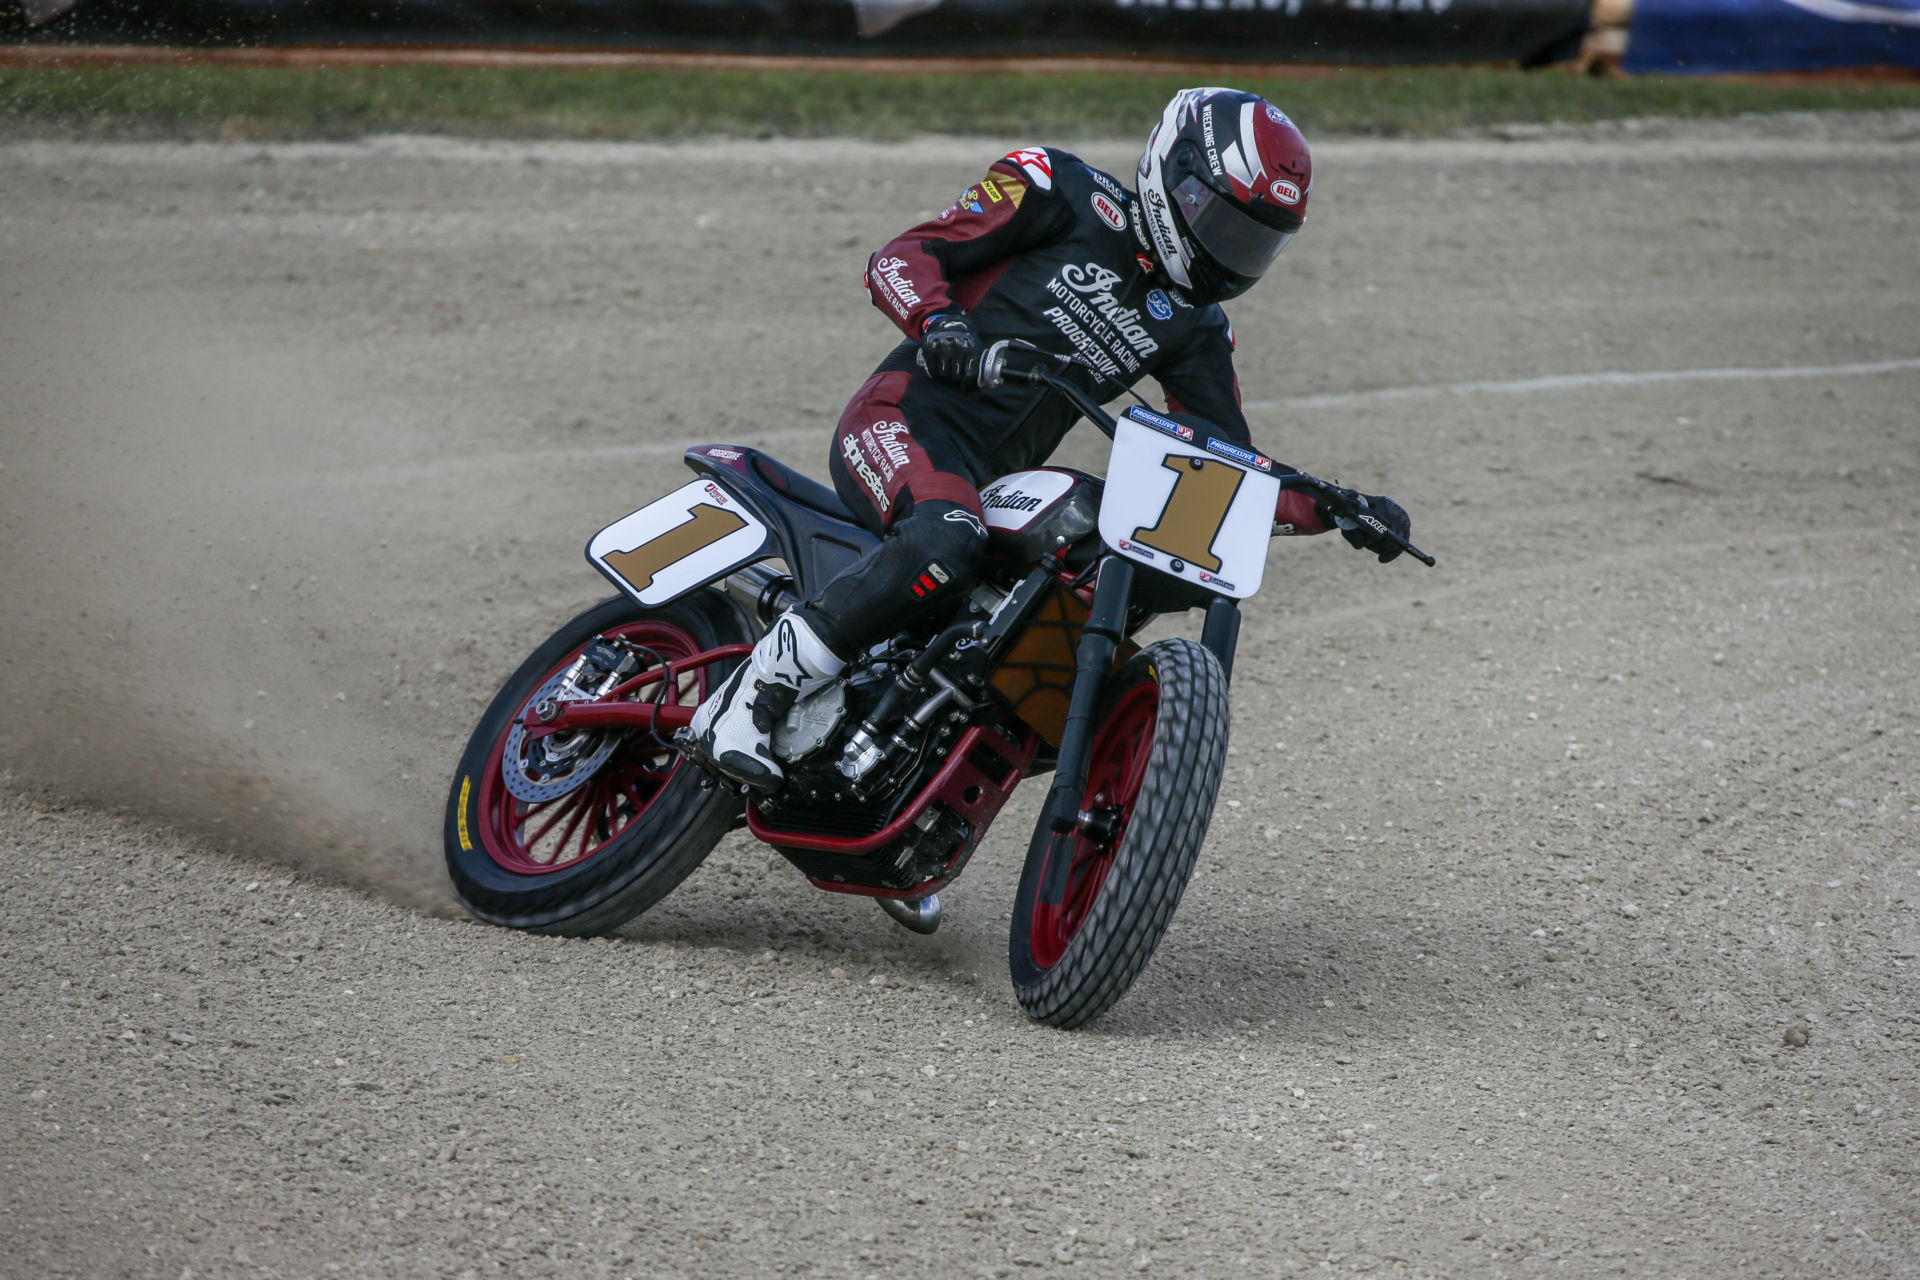 American Flat Track (AFT) SuperTwins Champion Briar Bauman (1). Photo courtesy Indian Motorcycle.